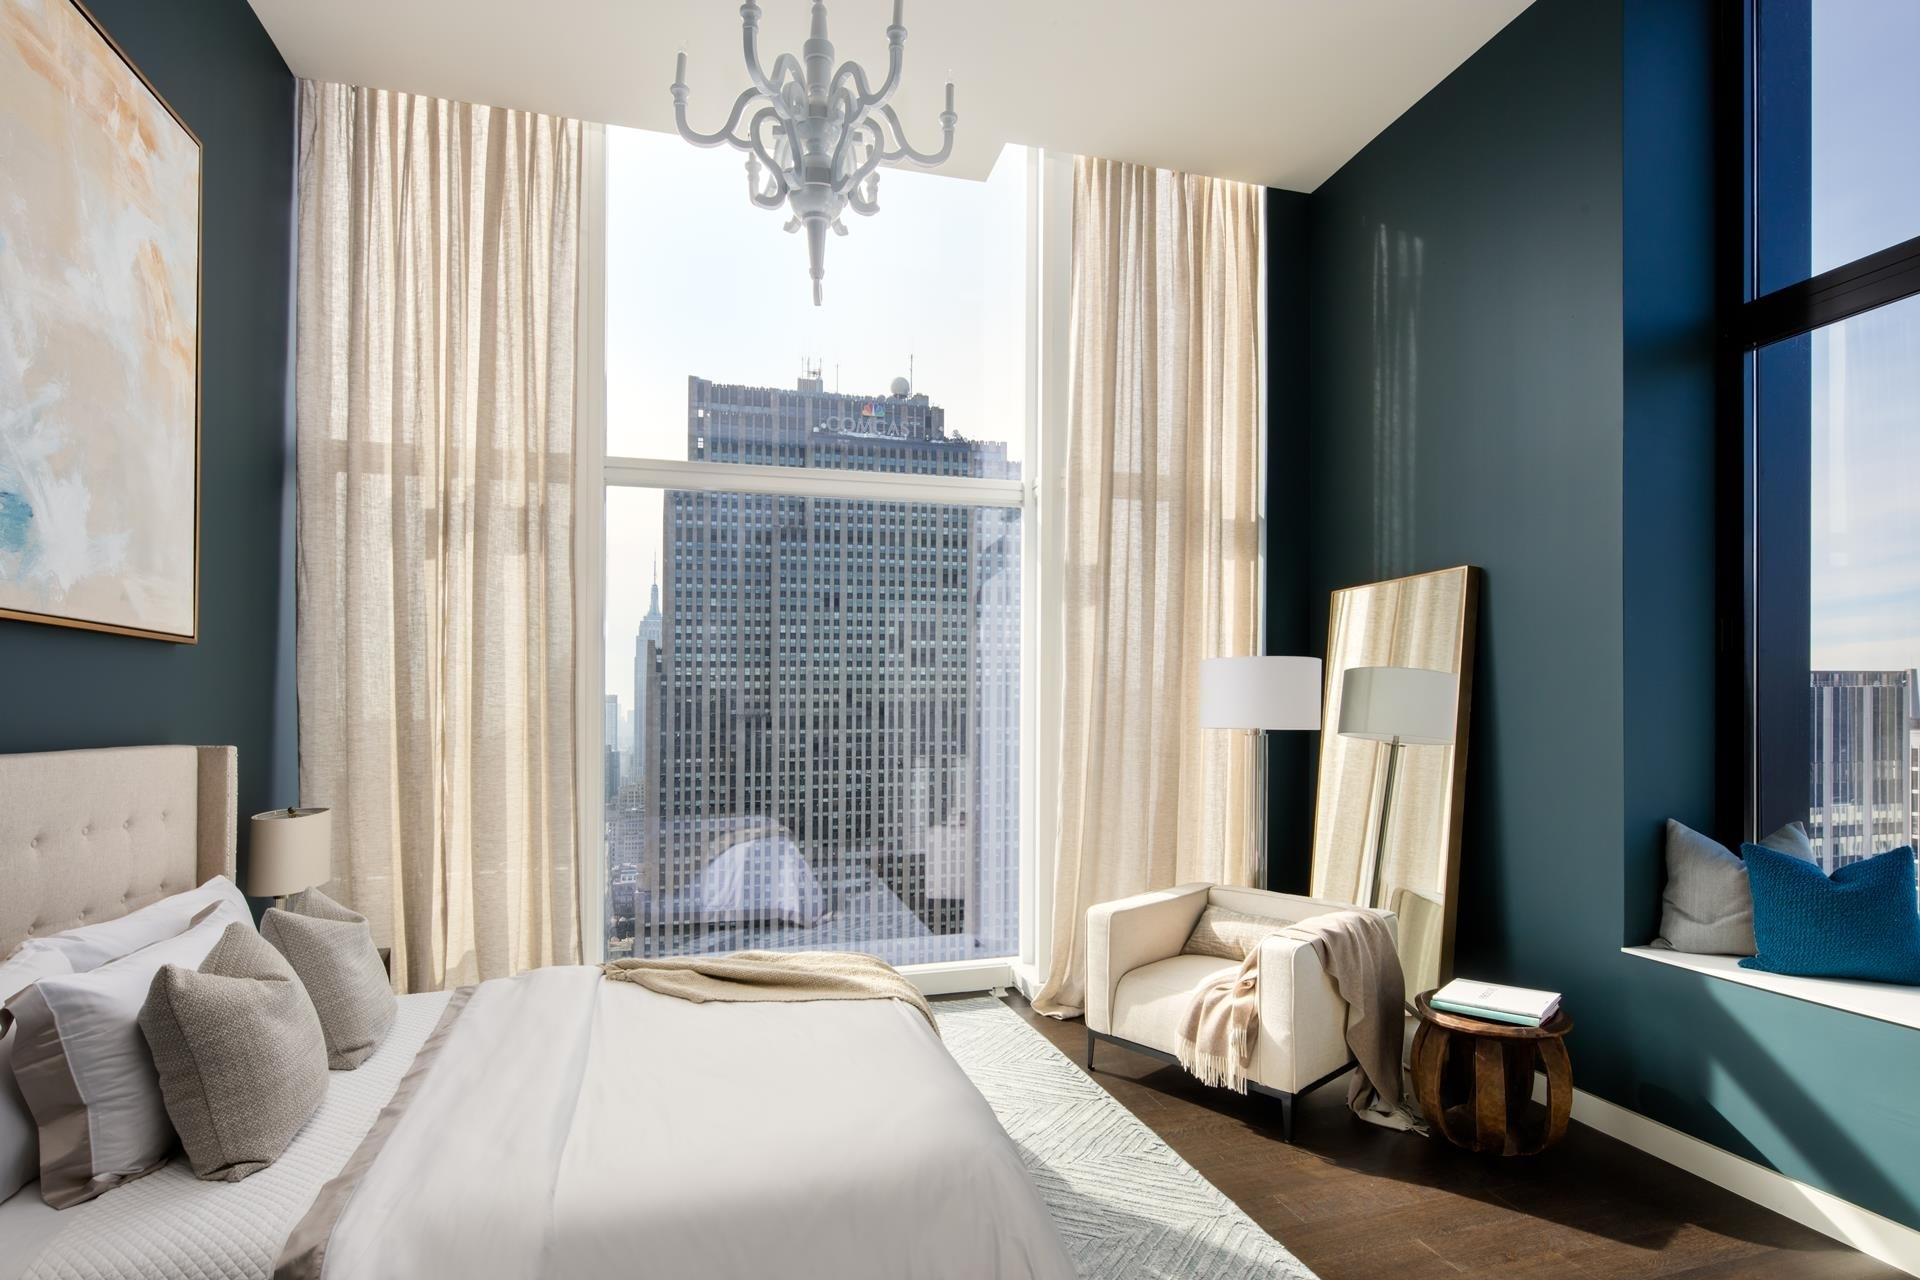 10. Condominiums for Sale at Baccarat Hotel And Residences, 20 W 53RD ST , PH48/49 Midtown West, New York, NY 10103